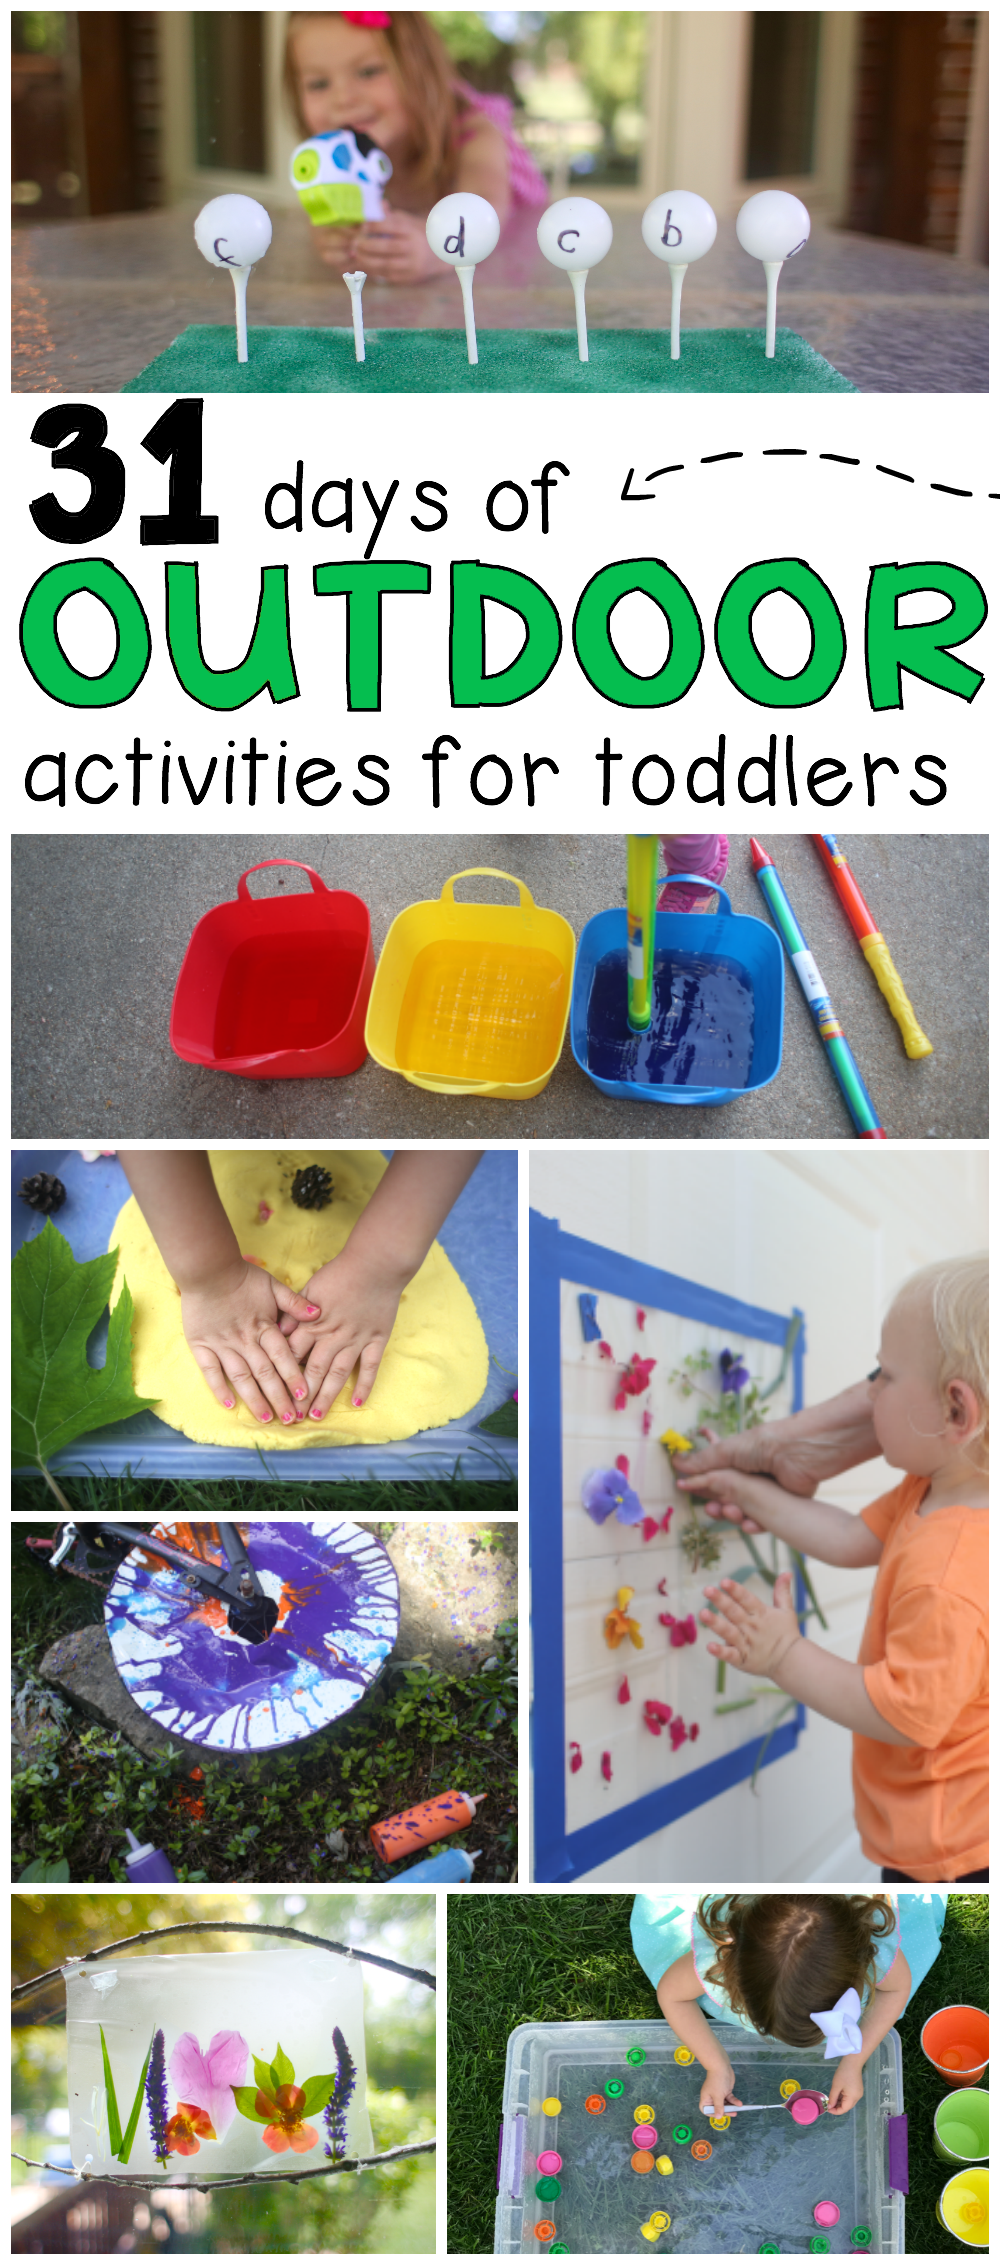 31 Days of Outdoor Activities for Toddlers